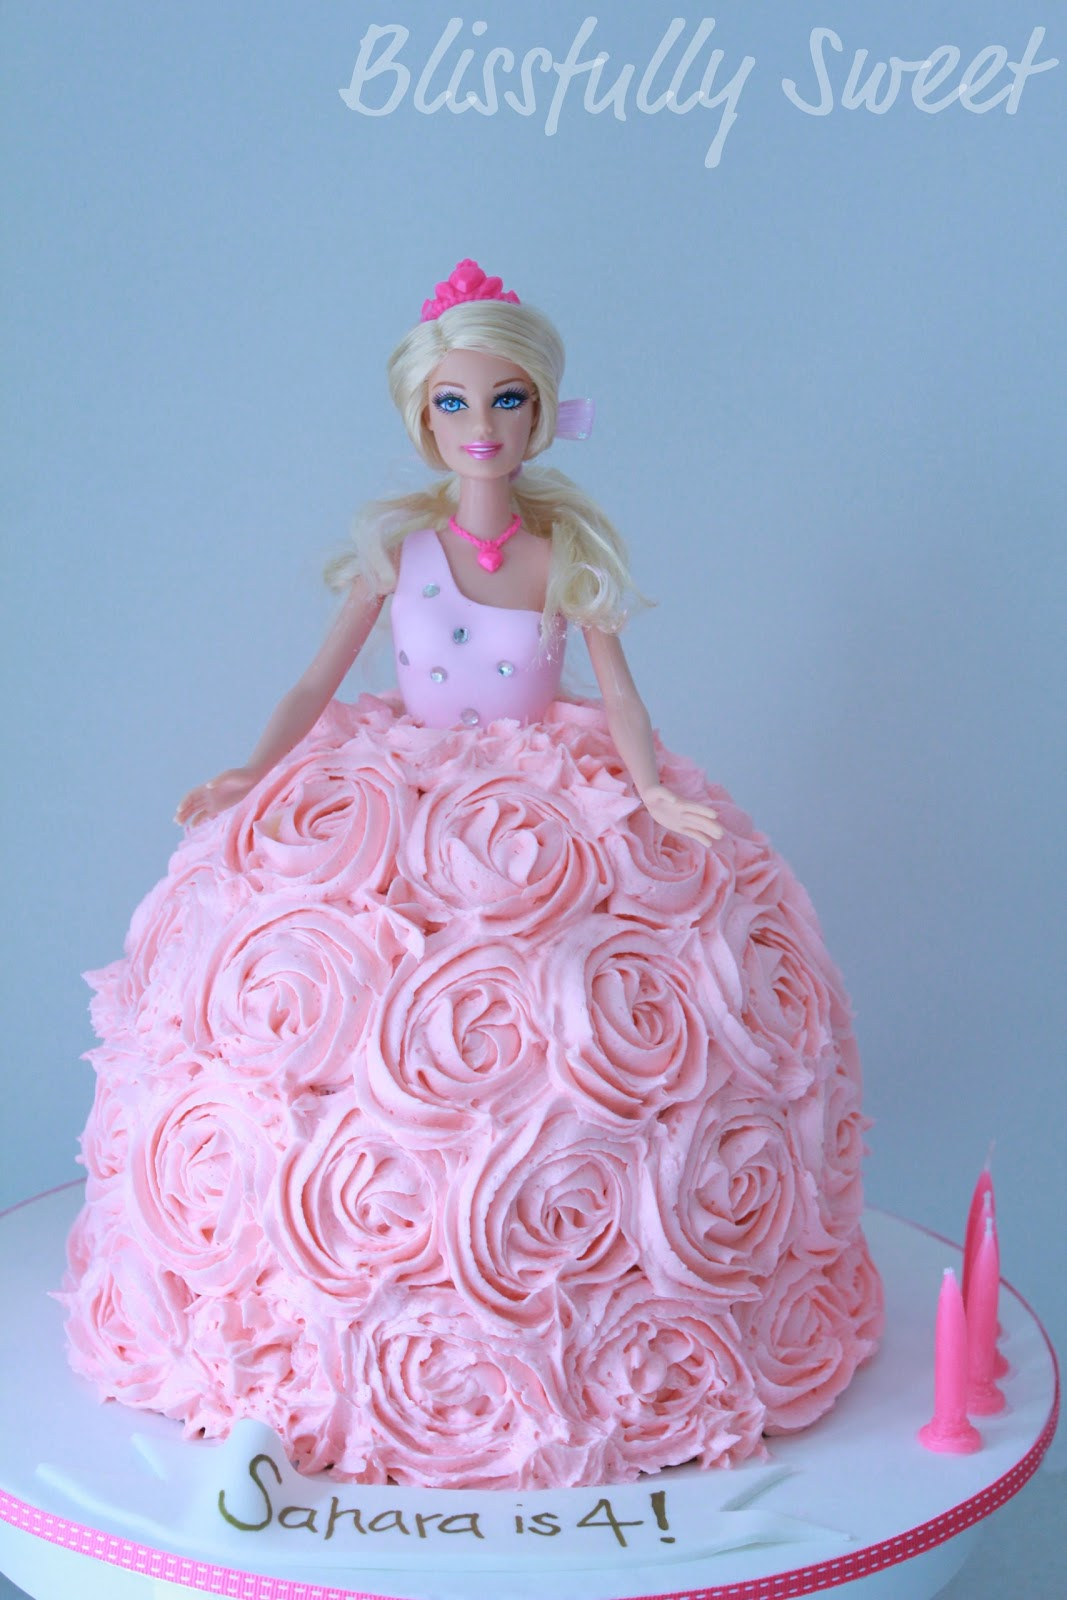 Images Of A Barbie Cake : Blissfully Sweet: A Barbie Buttercream Birthday Cake